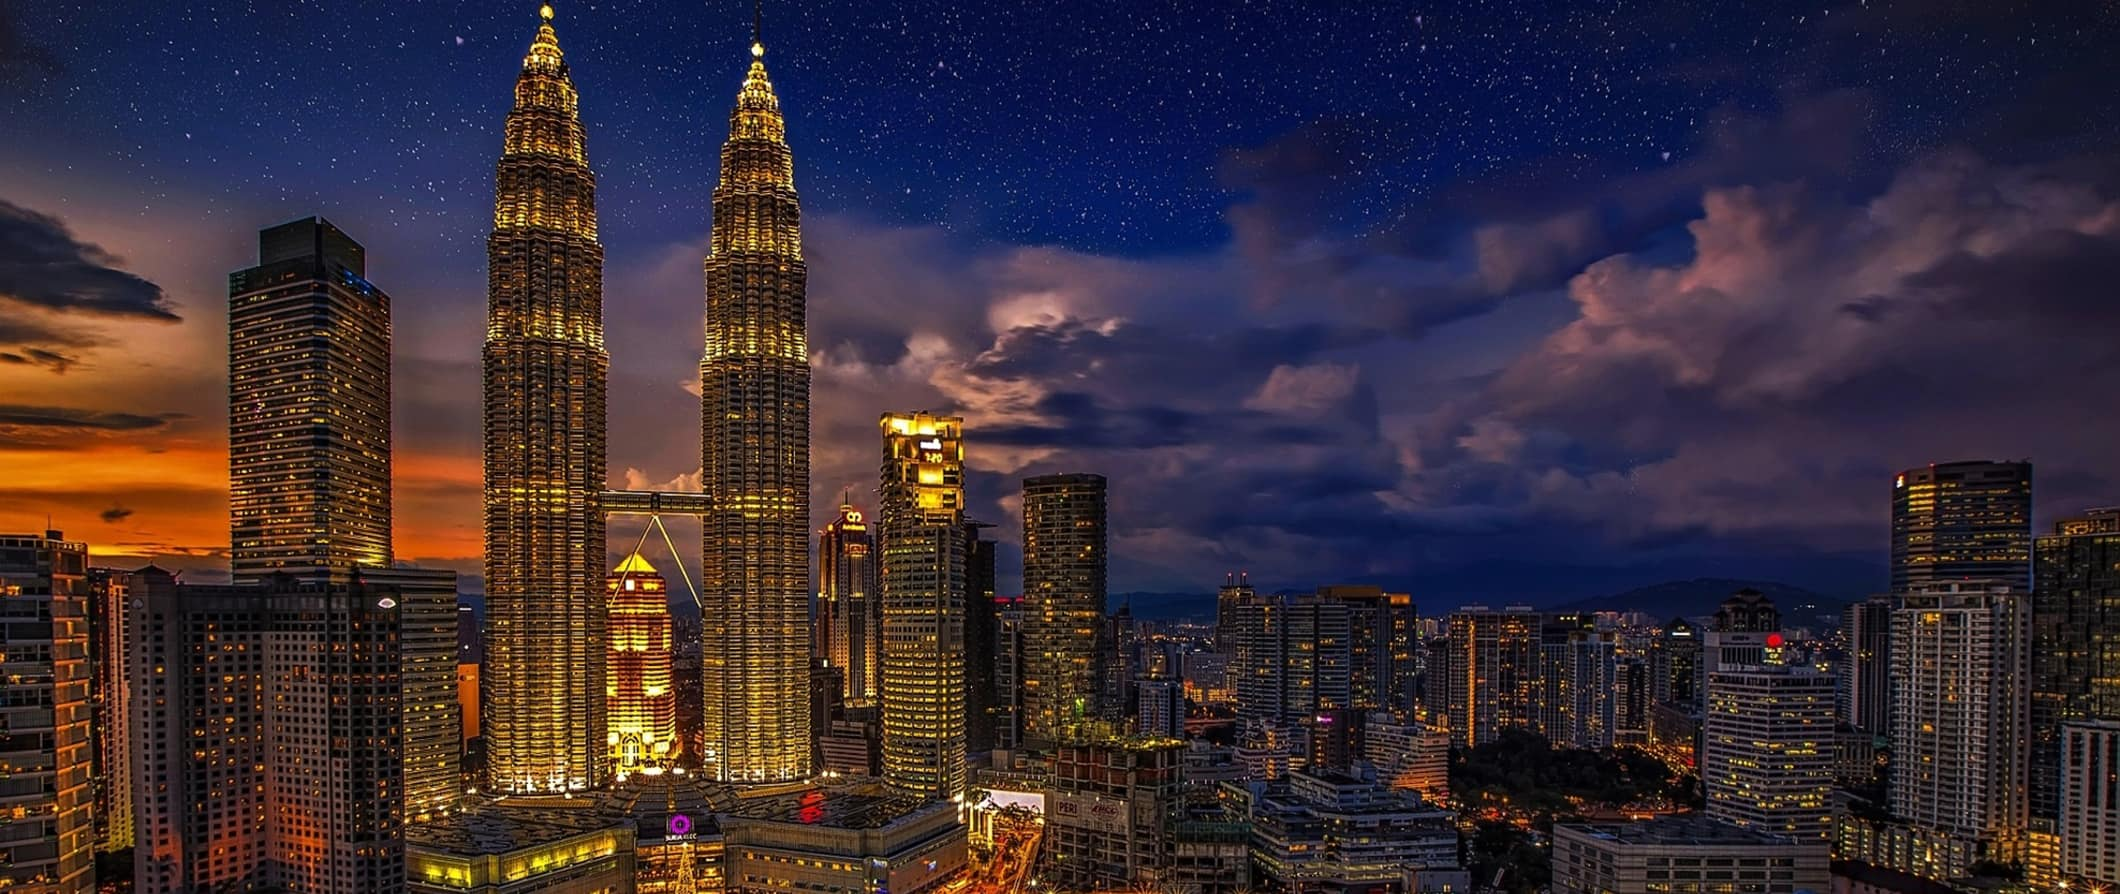 Kuala Lumpur lit up at night with the towers